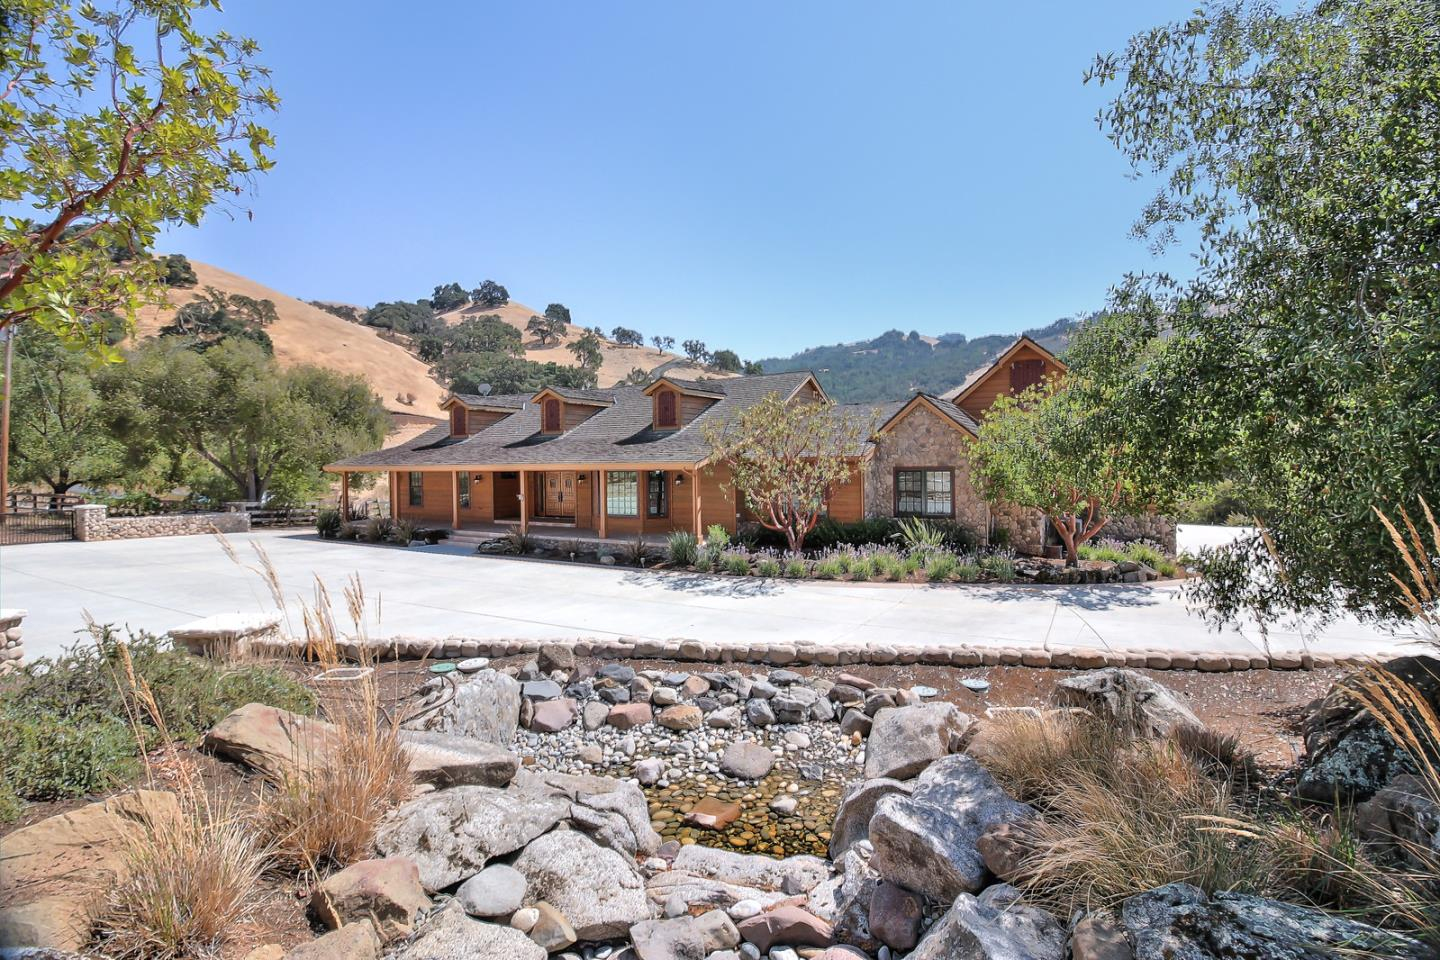 Single Family Home for Sale at 4541 Comstock Road 4541 Comstock Road Hollister, California 95023 United States